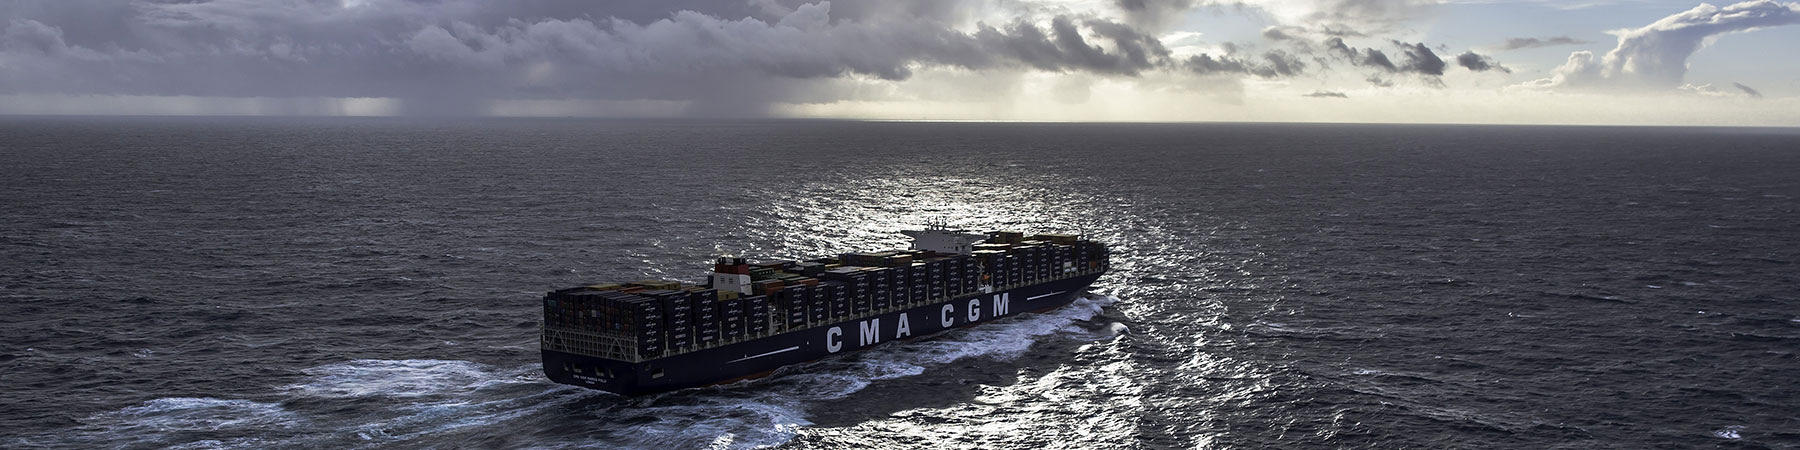 Le CMA CGM Marco Polo - Photo Plisson